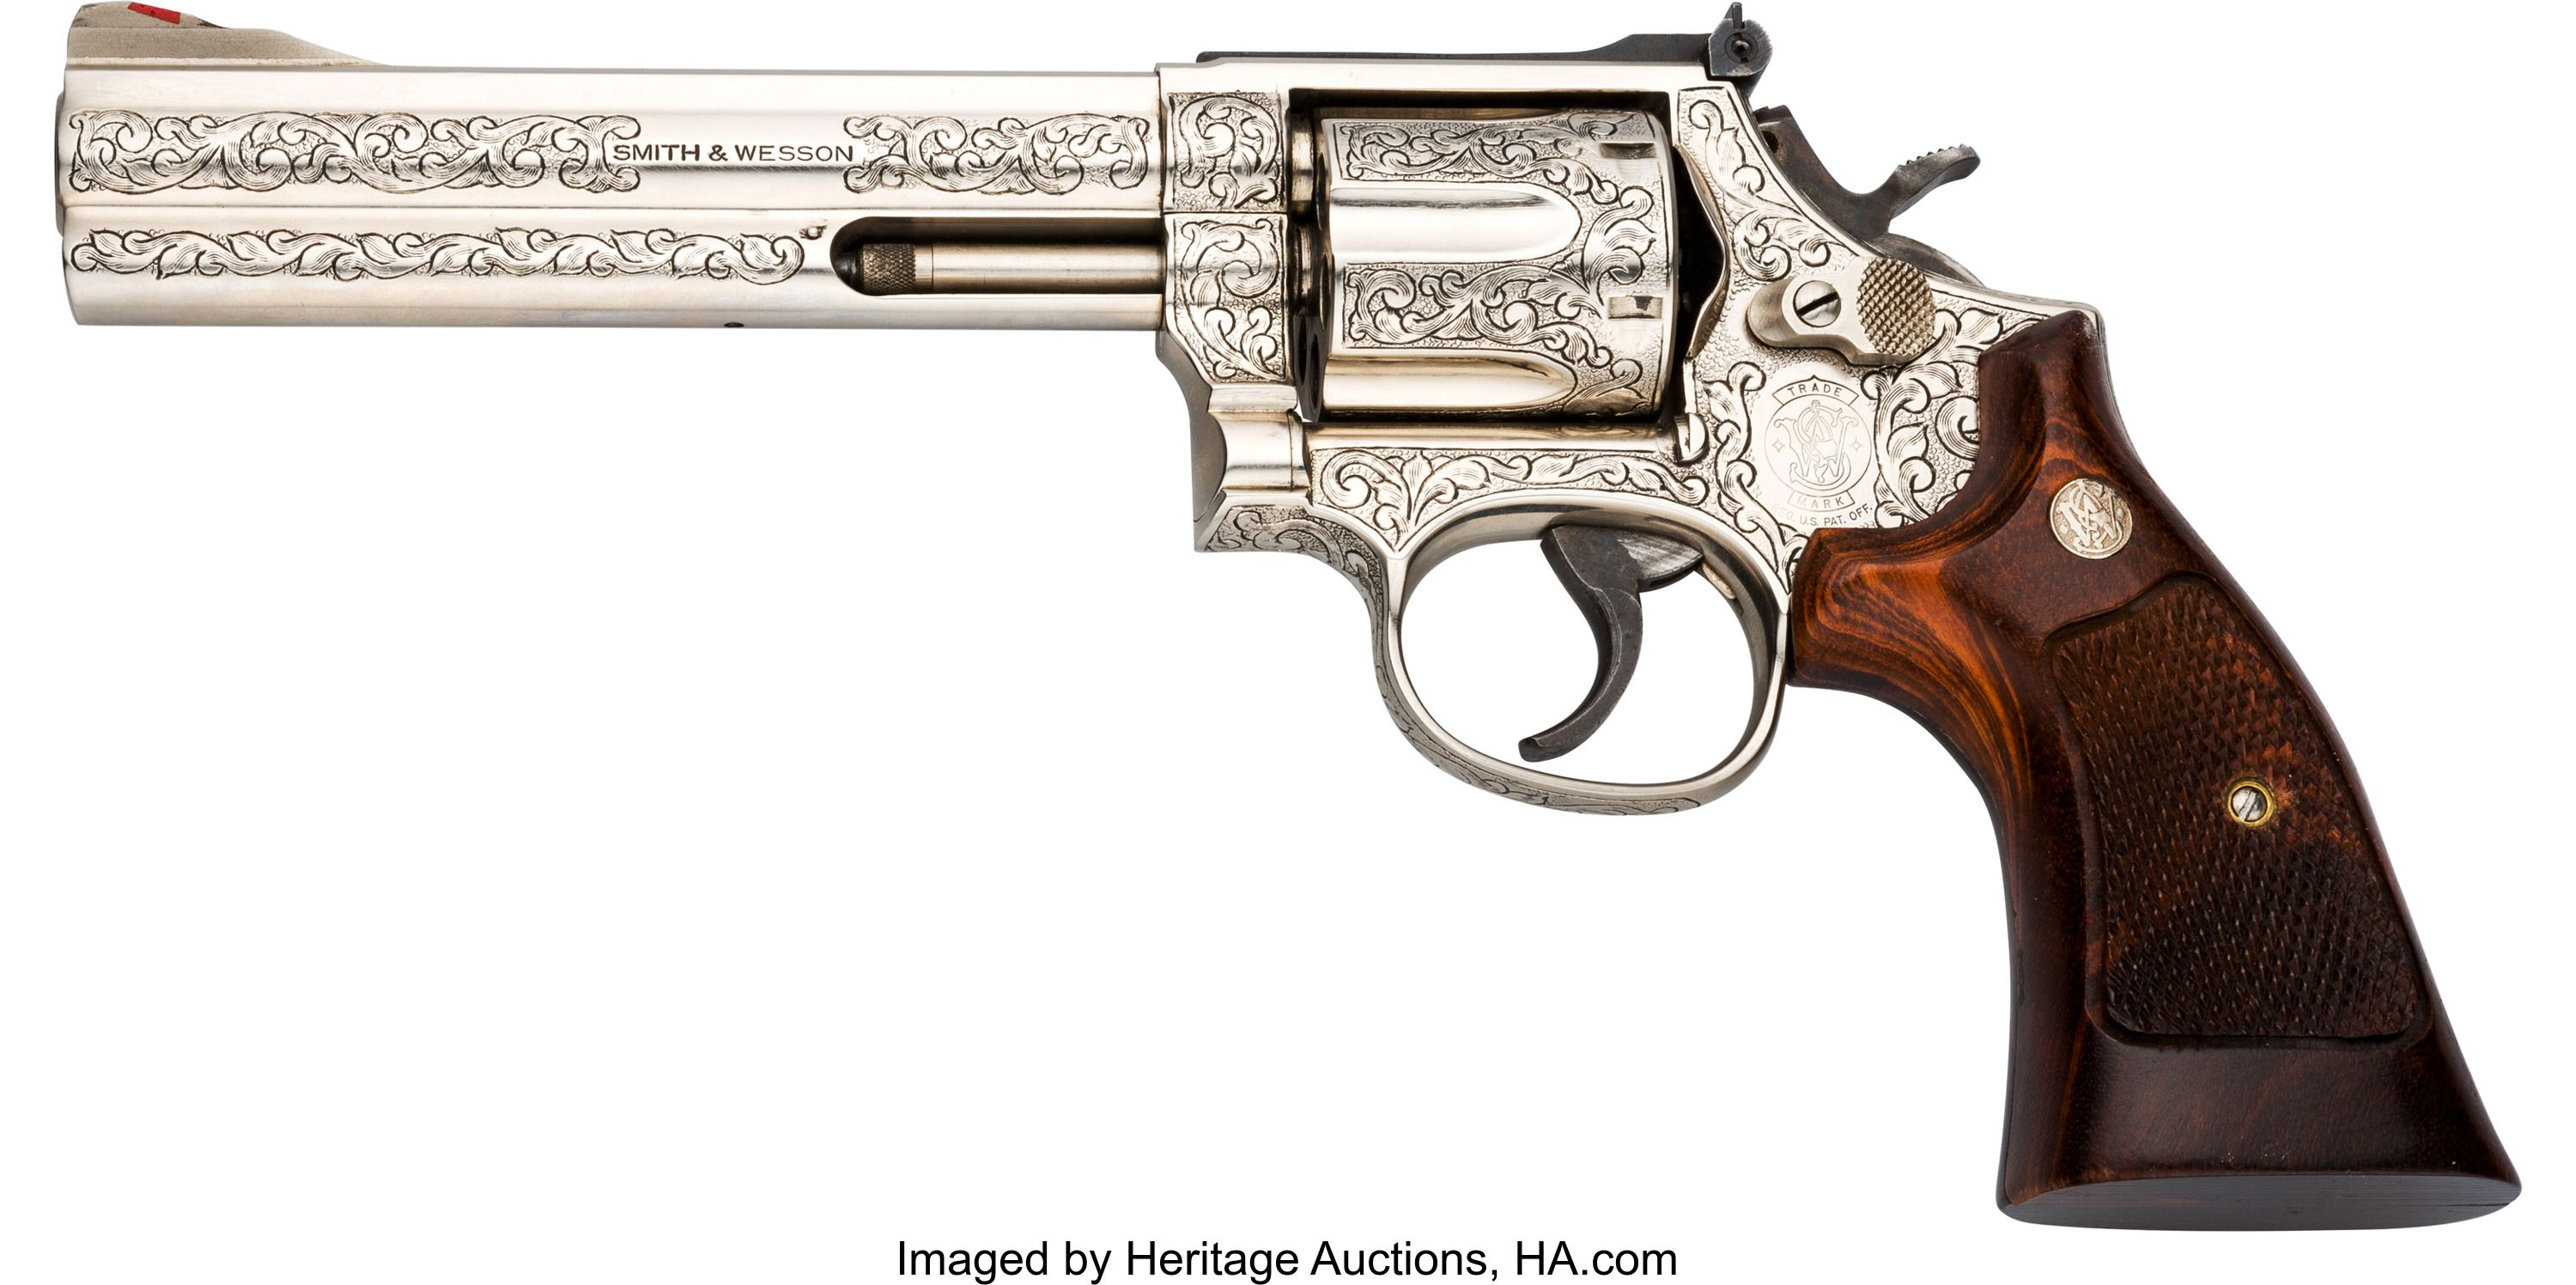 Engraved Smith & Wesson Model 586 Double Action Revolver  Serial no